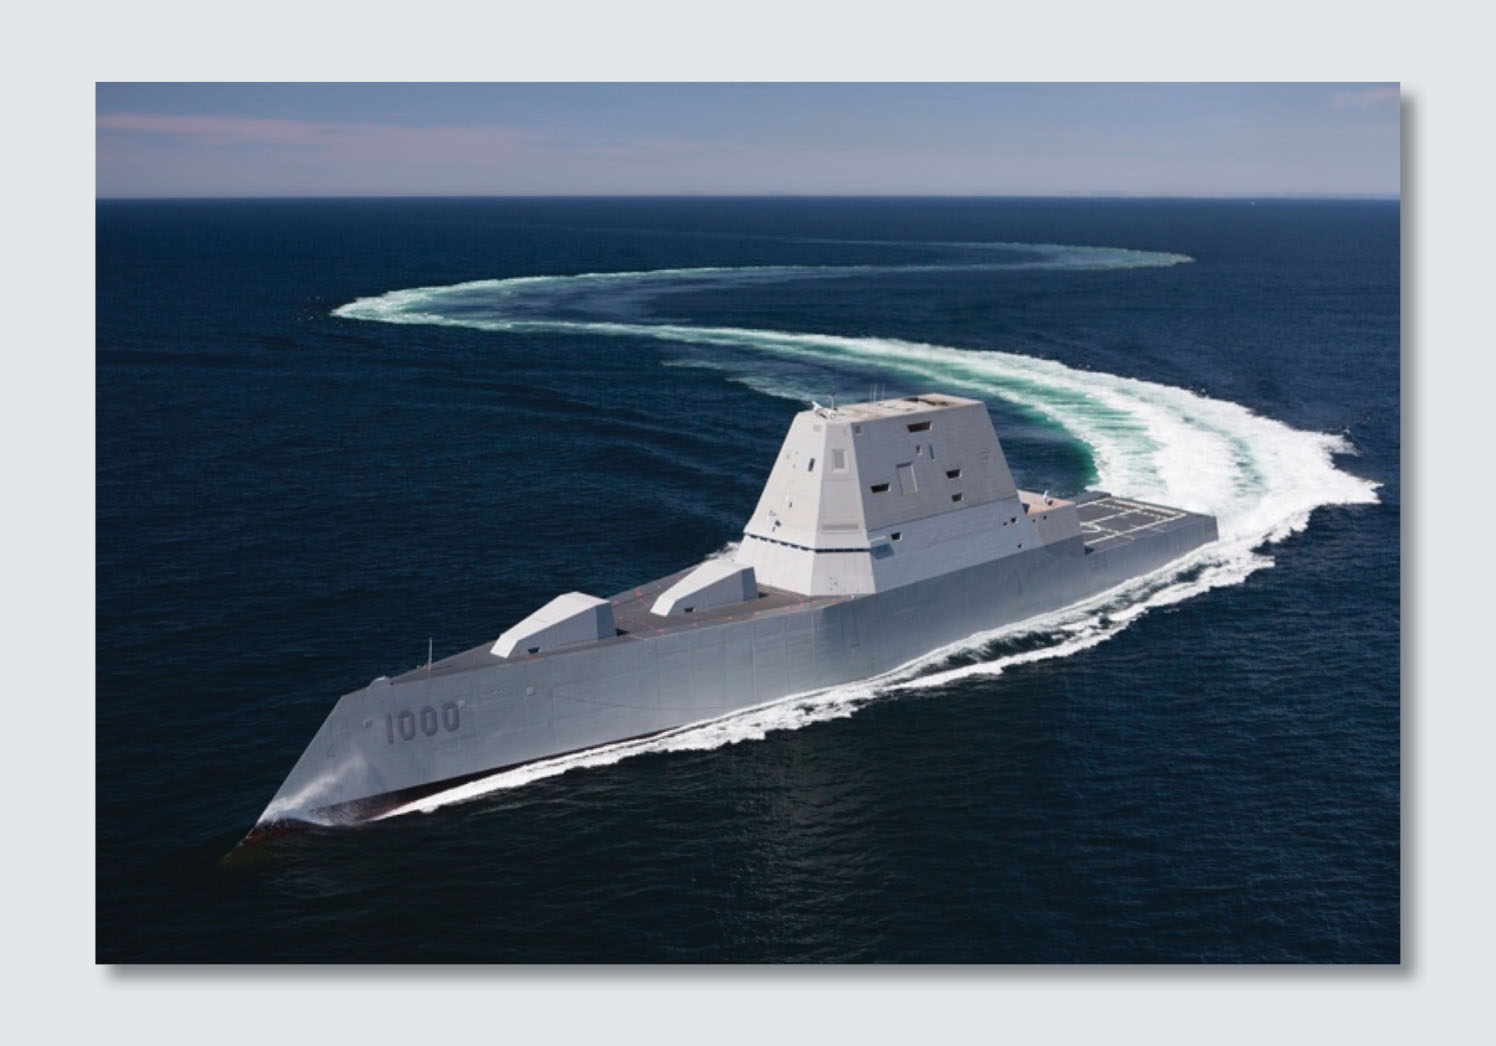 Lessons Learned for Modernizing Nuclear Power Plants from the Development of the Zumwalt Class Destroyer